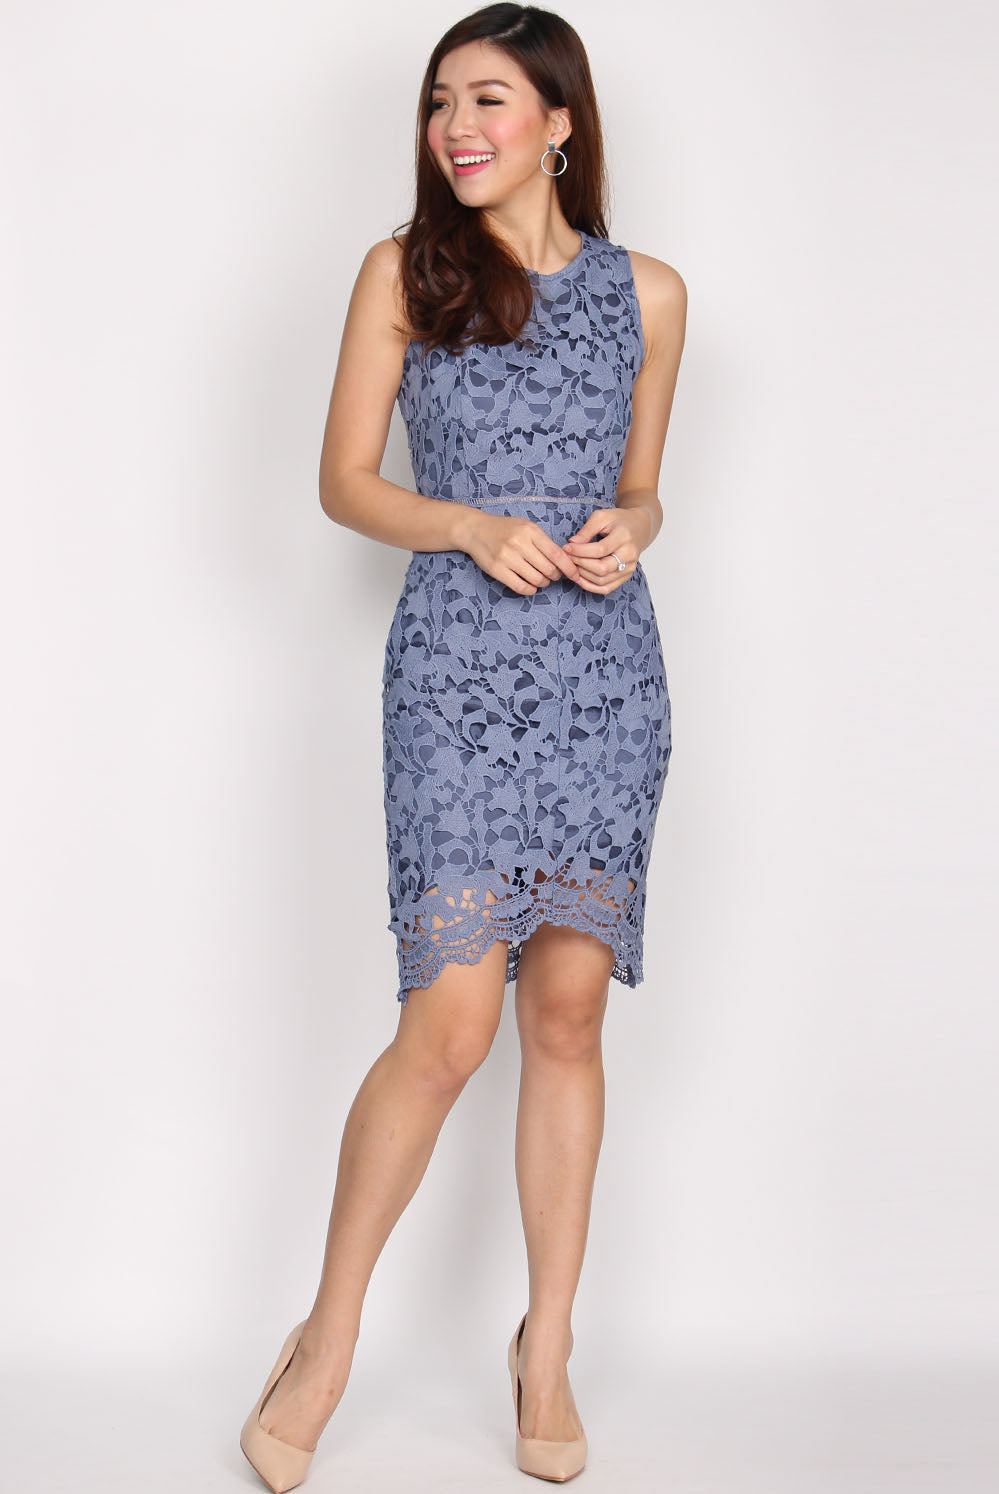 *Restock* Fleurette Fishtail Crochet Dress In Periwinkle